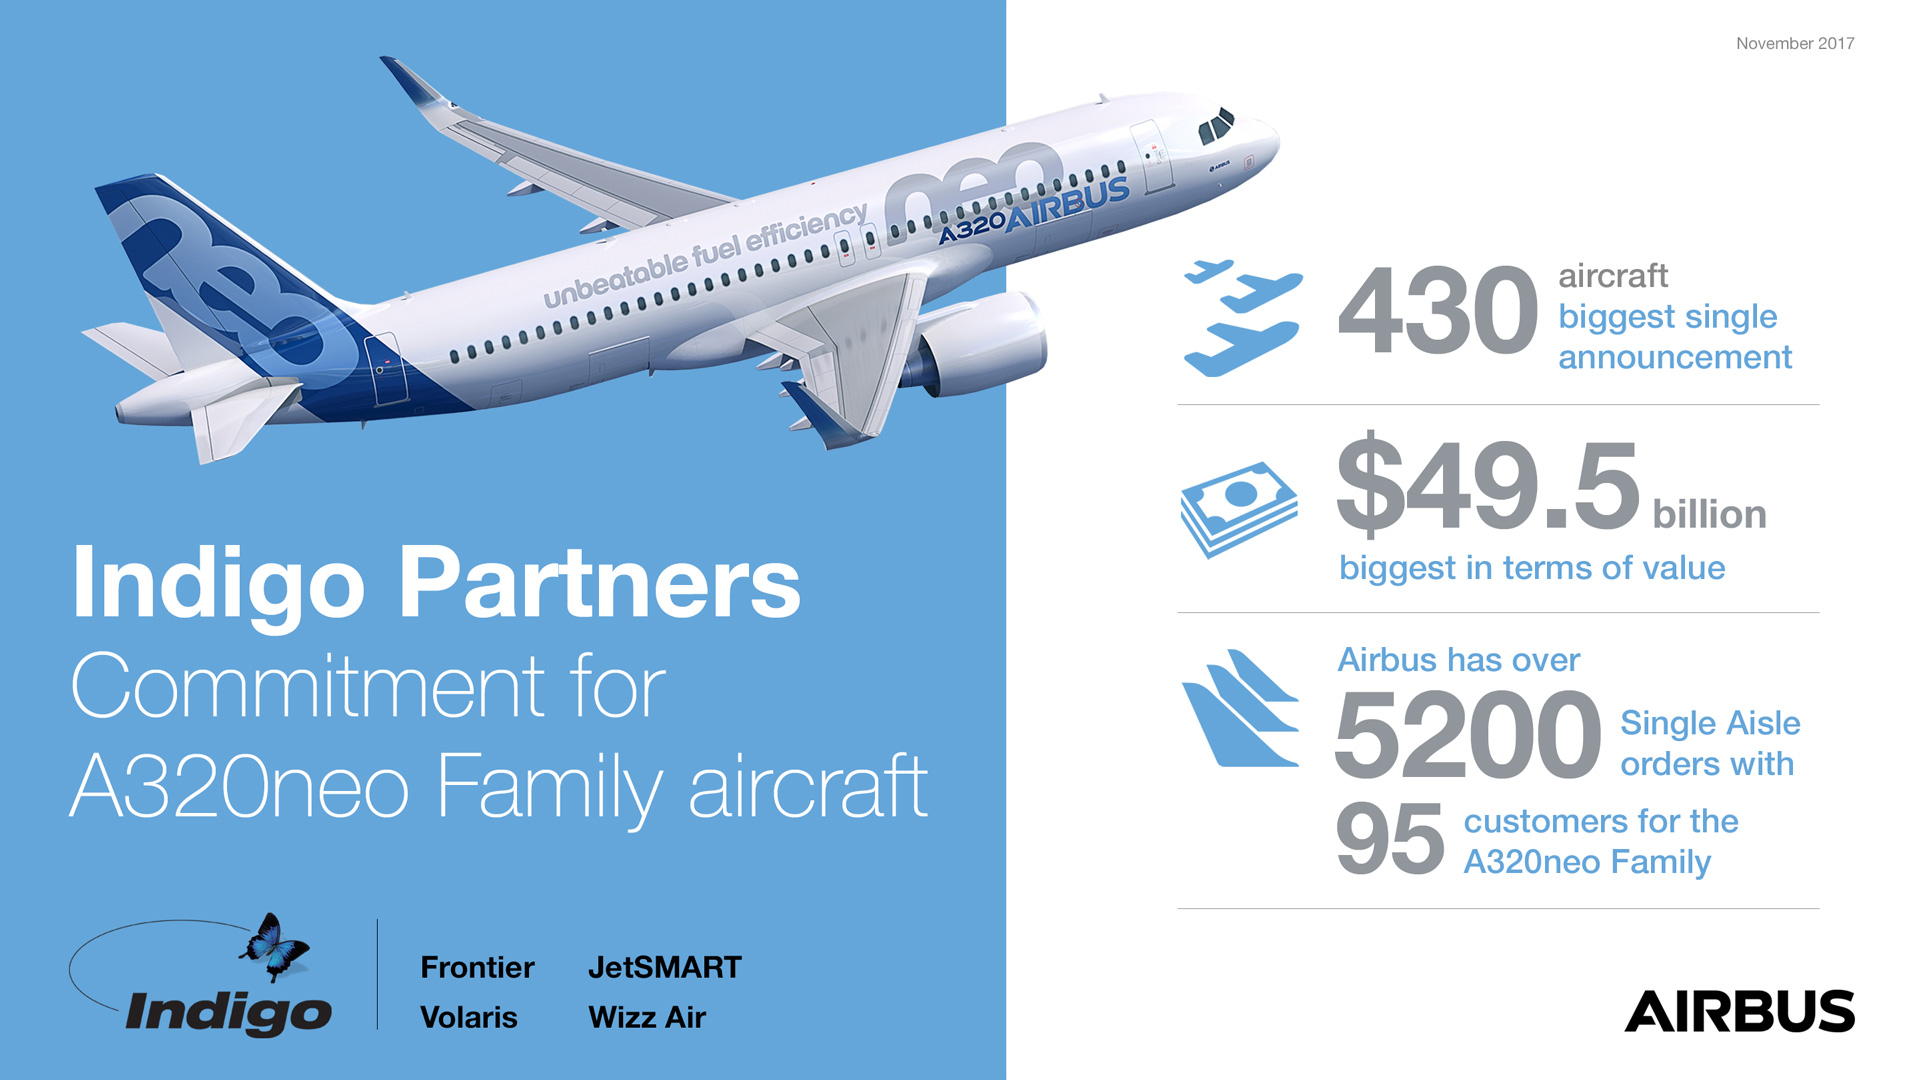 An infographic highlighting key figures related to Indigo Partners' commitment for 430 A320neo Family aircraft